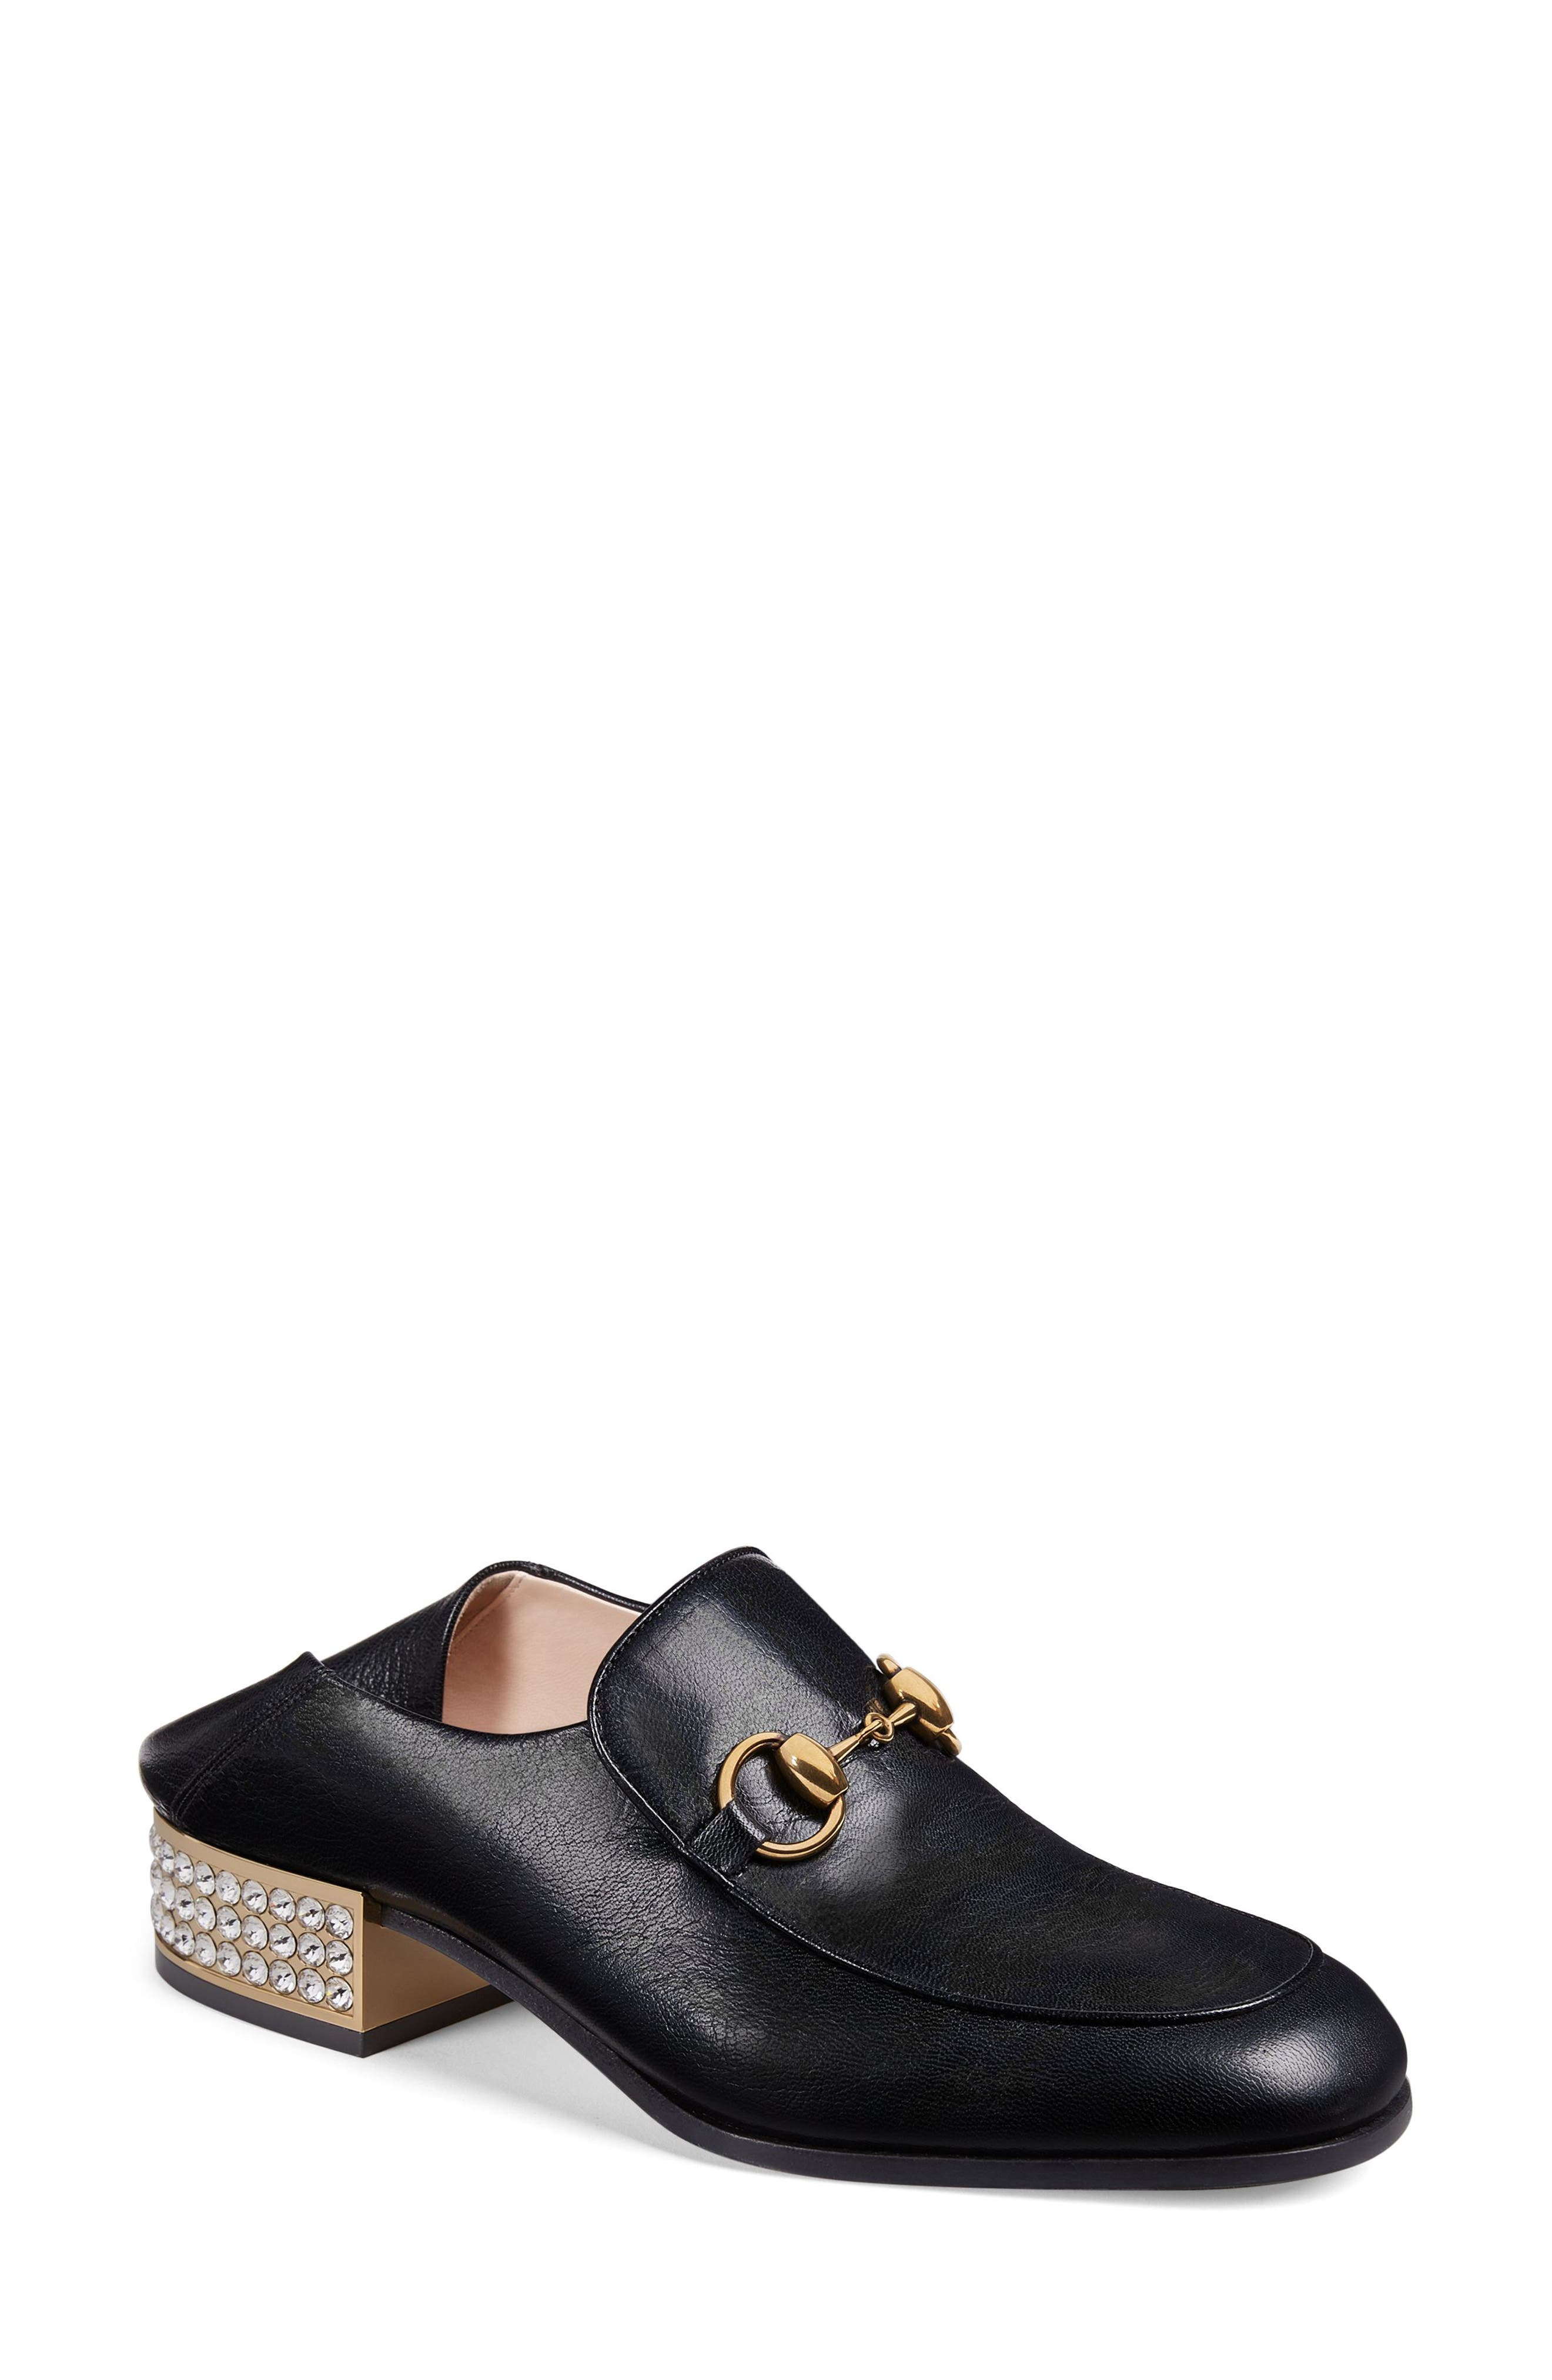 Gucci Mister Crystal Convertible Loafer